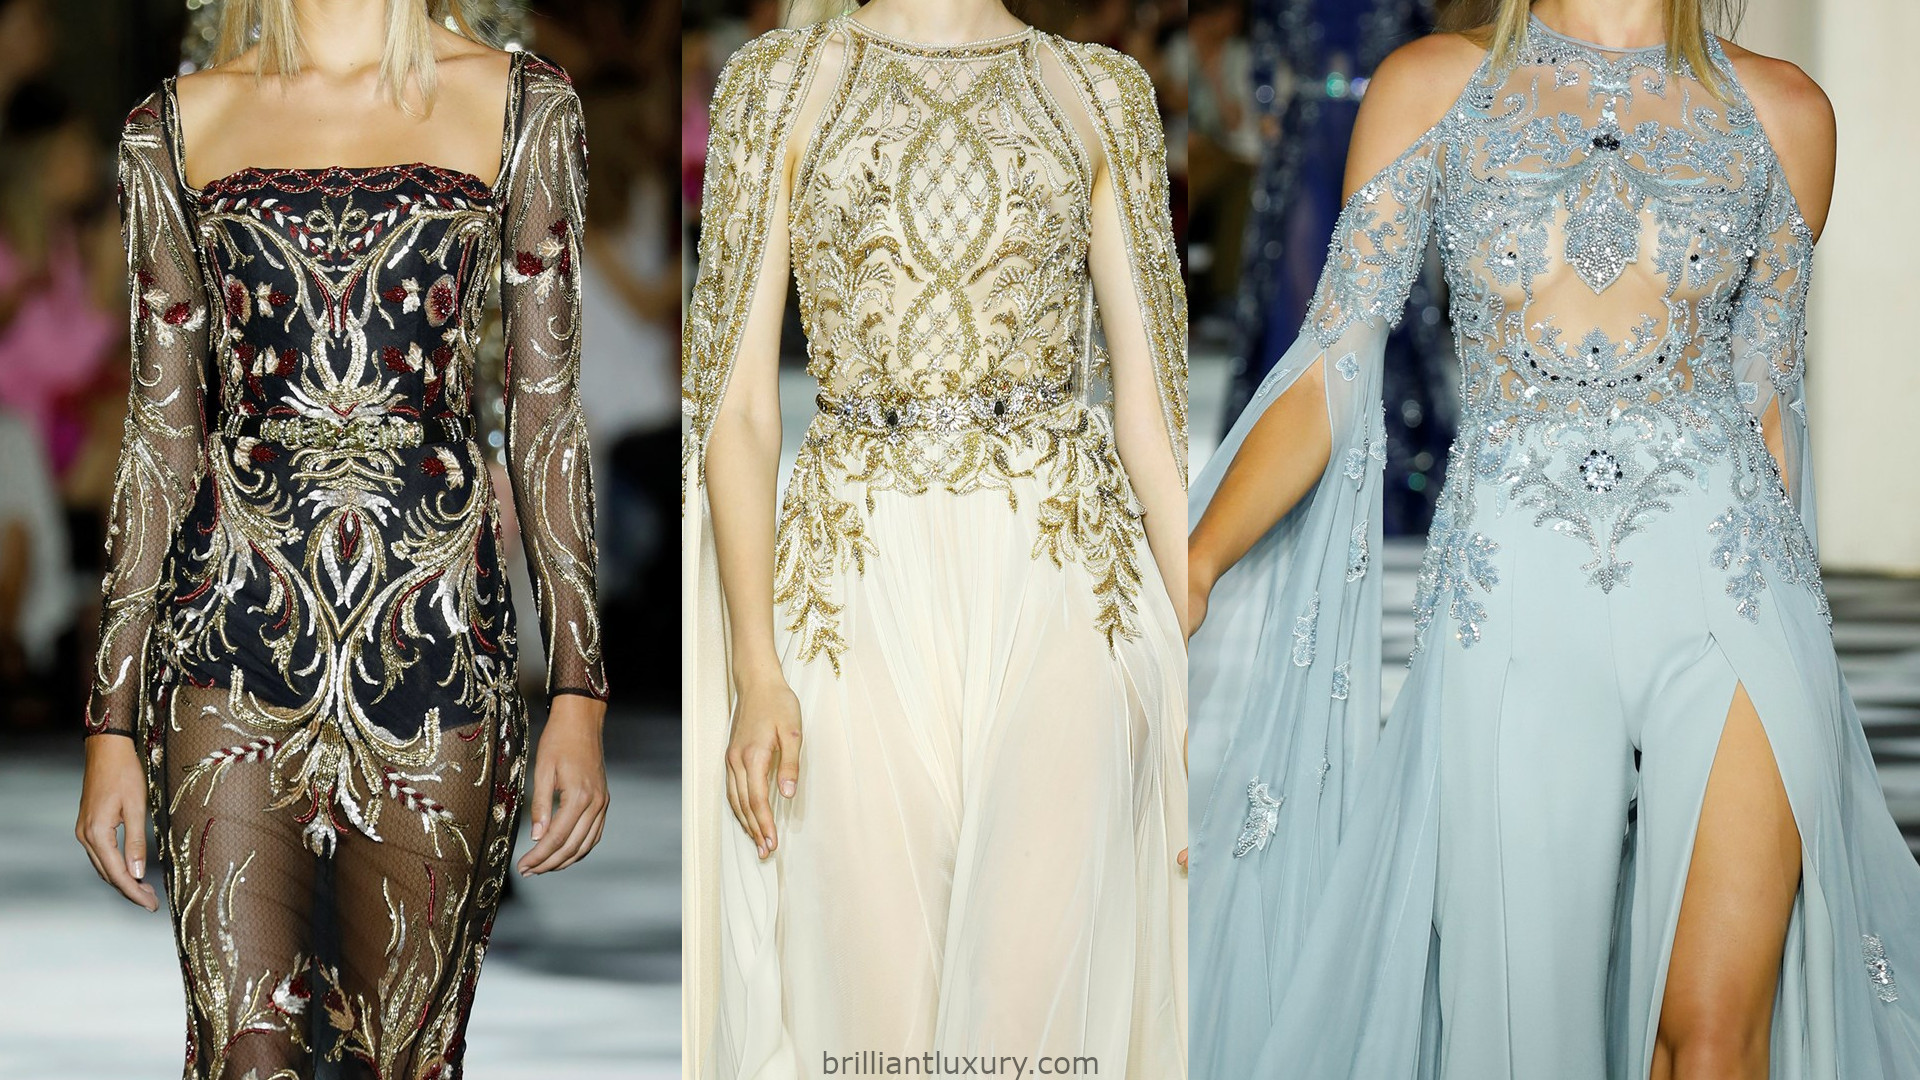 Zuhair Murad Couture Gowns